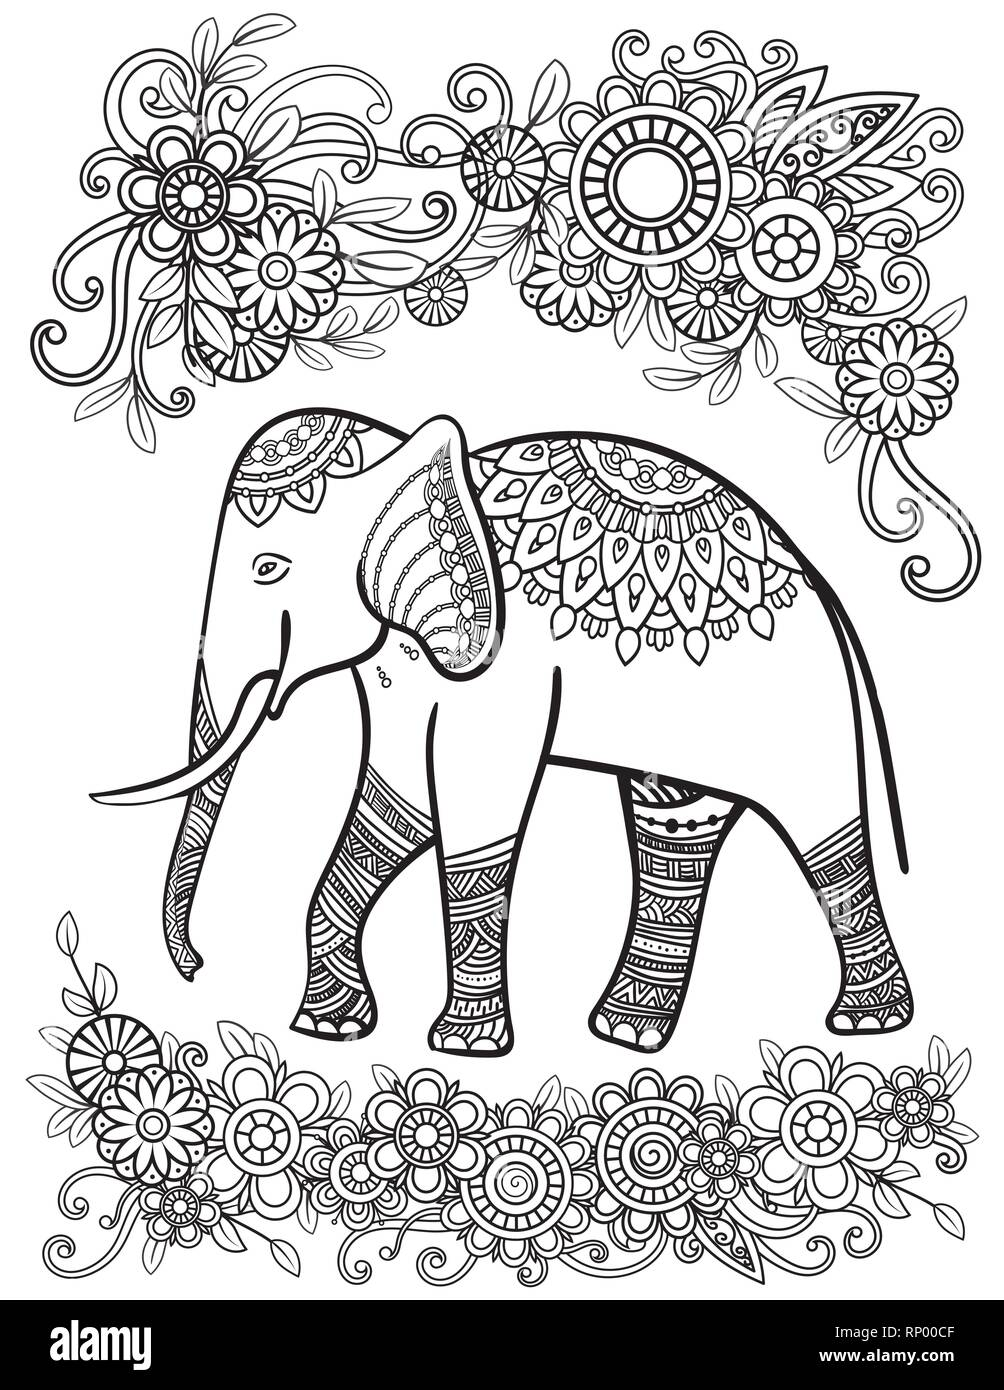 Ethnic elephant line art vector illustration. Oriental pattern with flowers and mandalas. Hand drawn vector illustration. Coloring page for adult coloring book. - Stock Vector